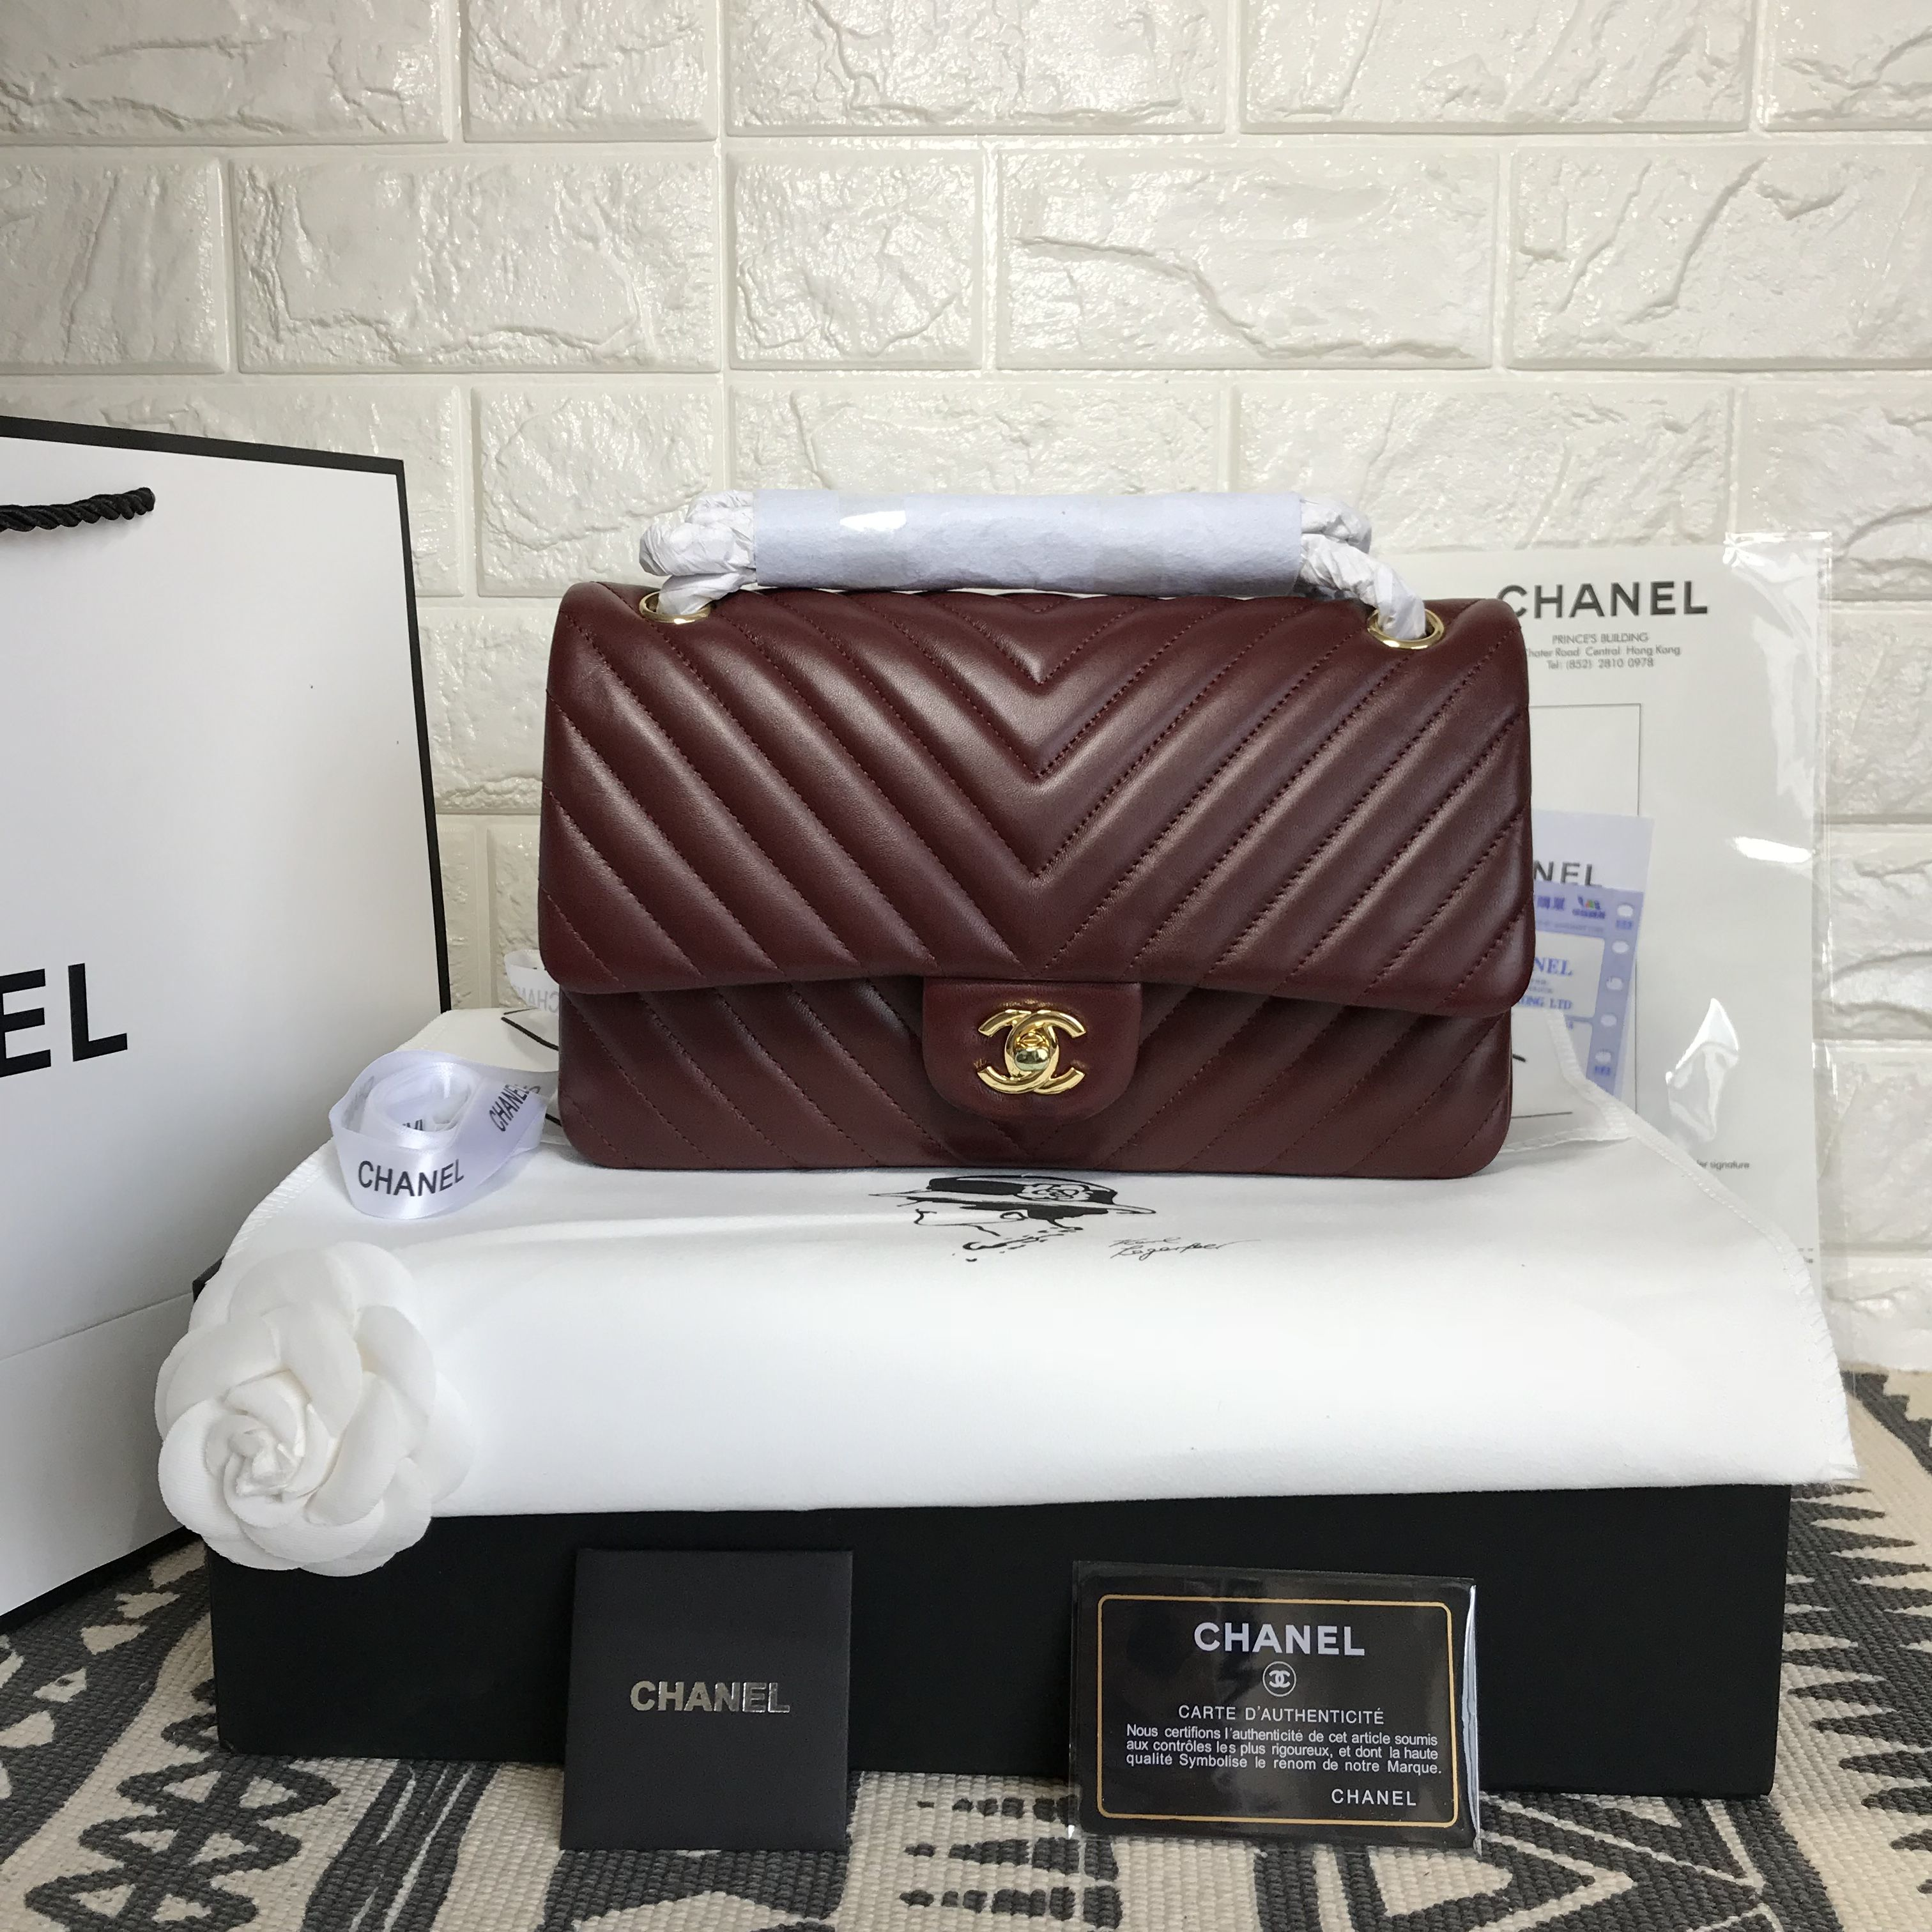 2a4247c844133a Chanel woman 2.55 classic flap bag V pattern burgundy original leather  version